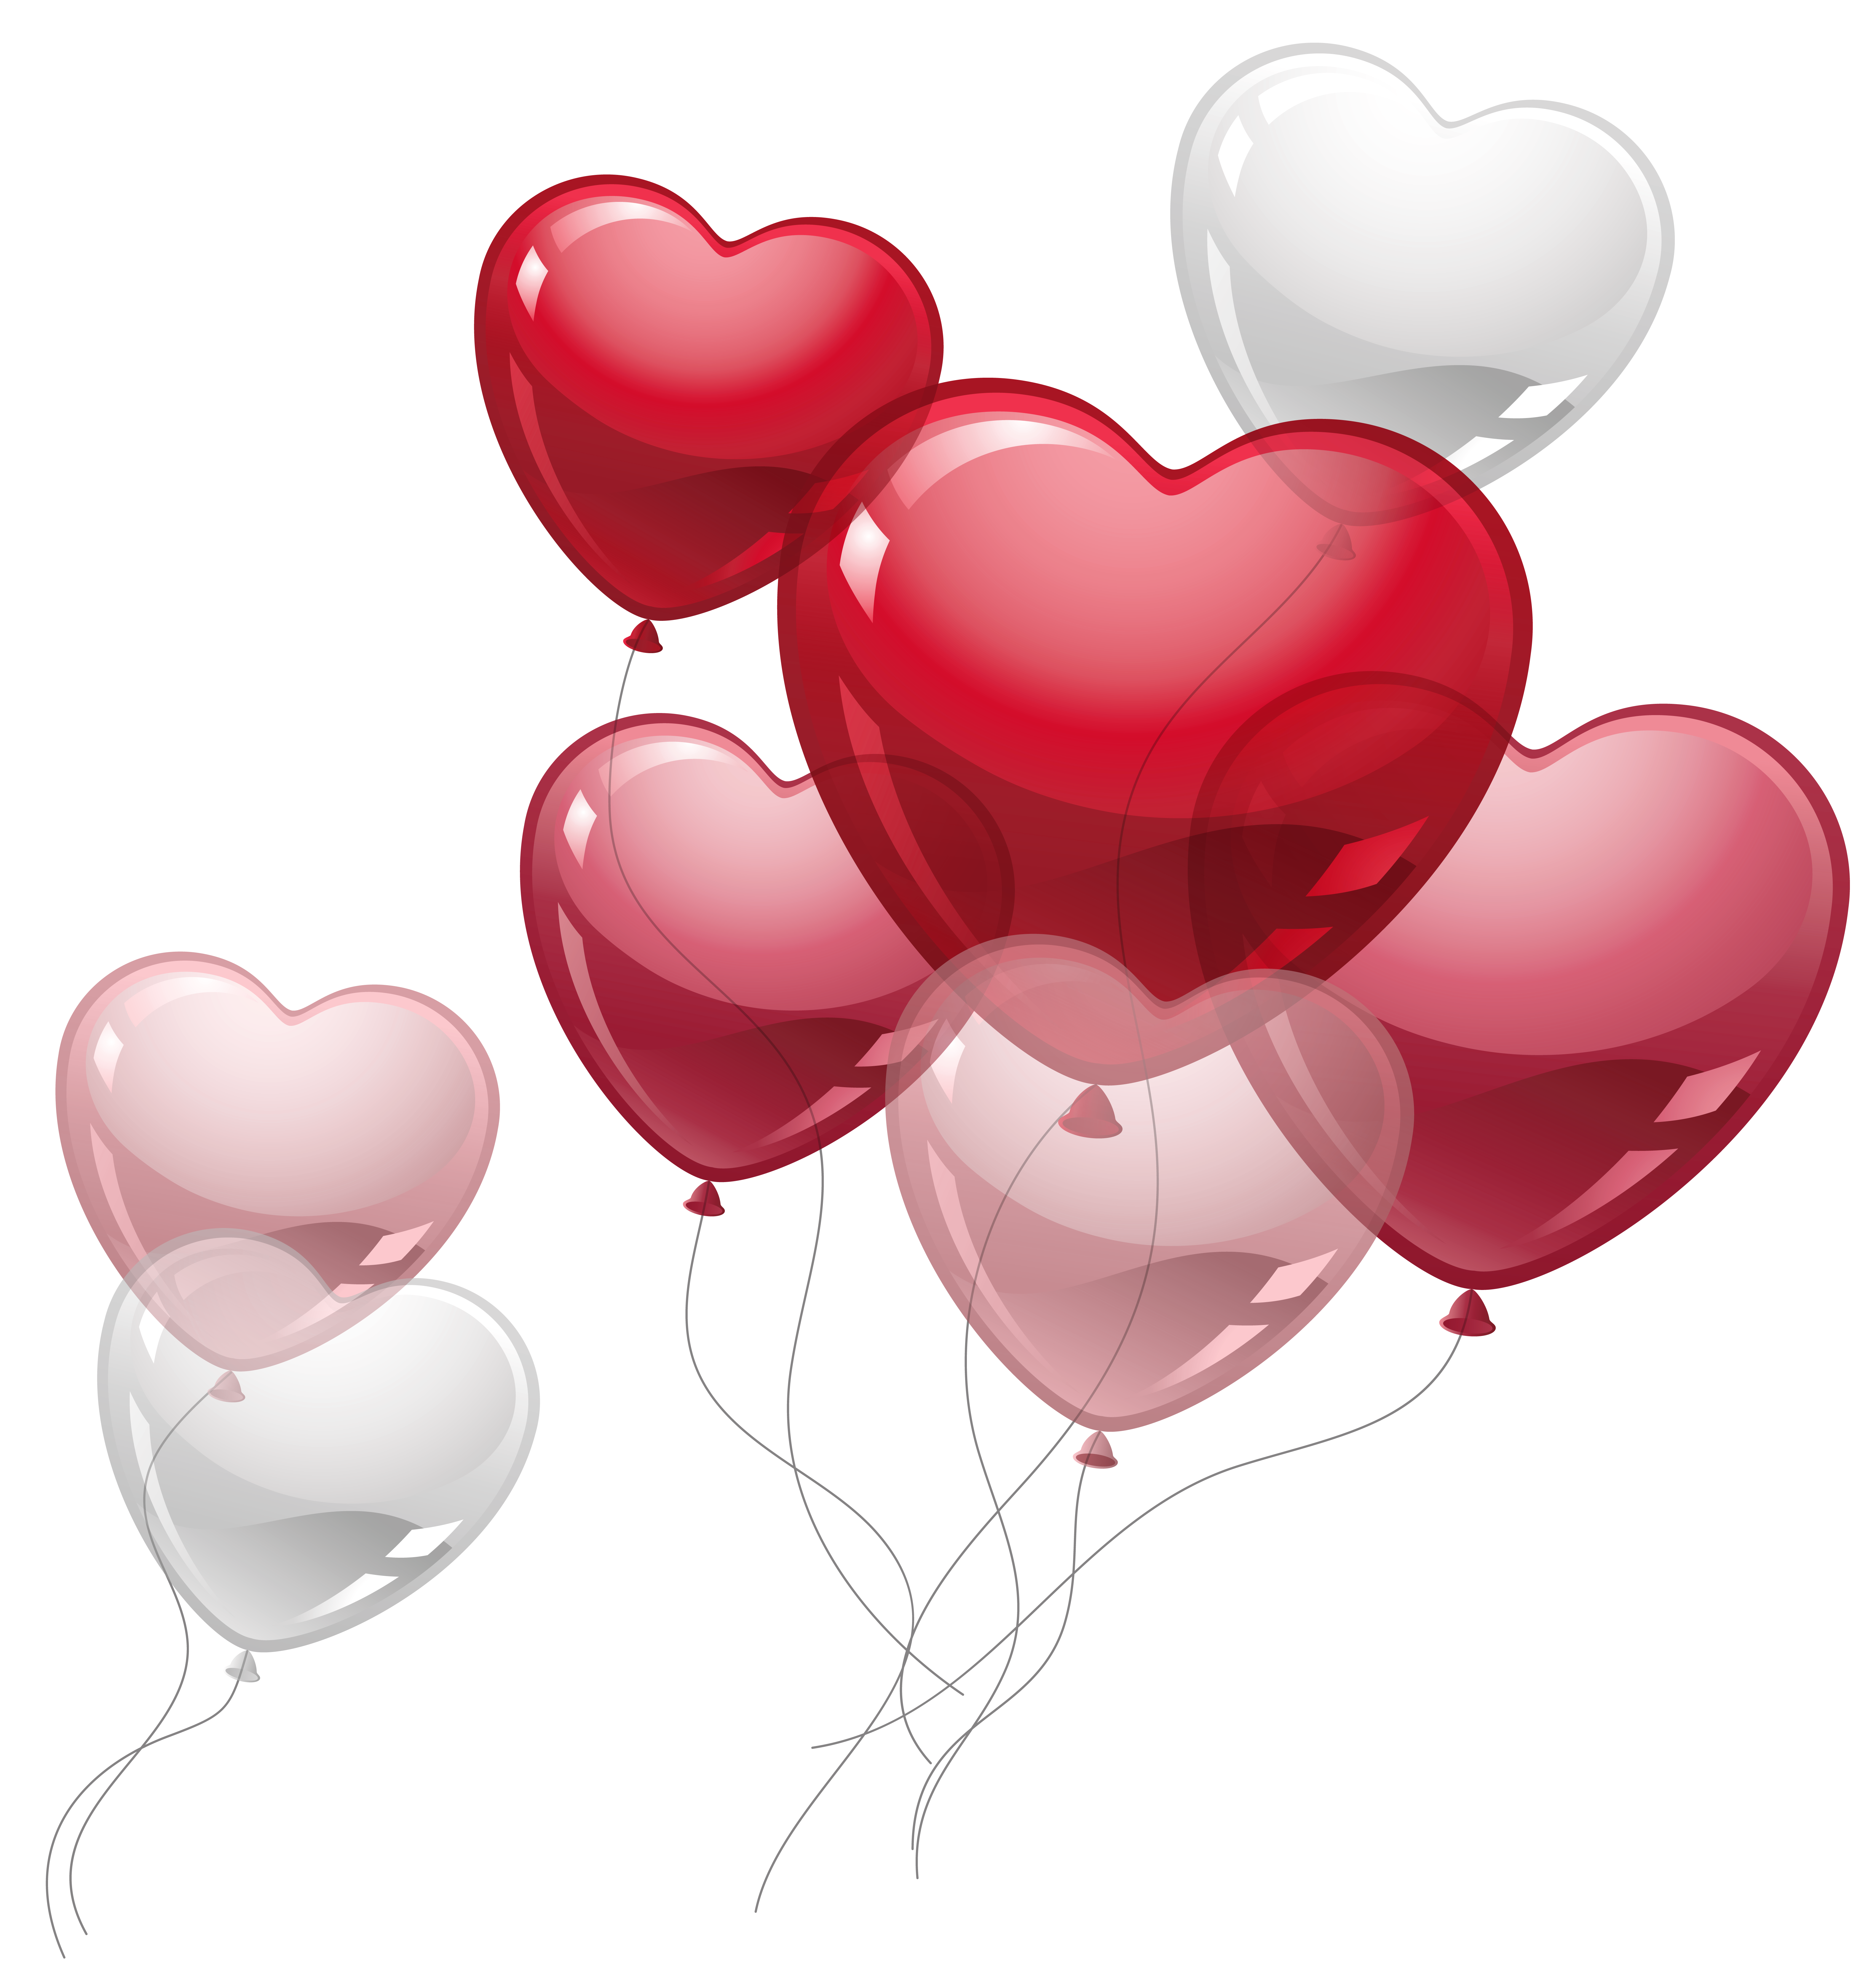 Valentine balloons png. Cute heart clipart picture